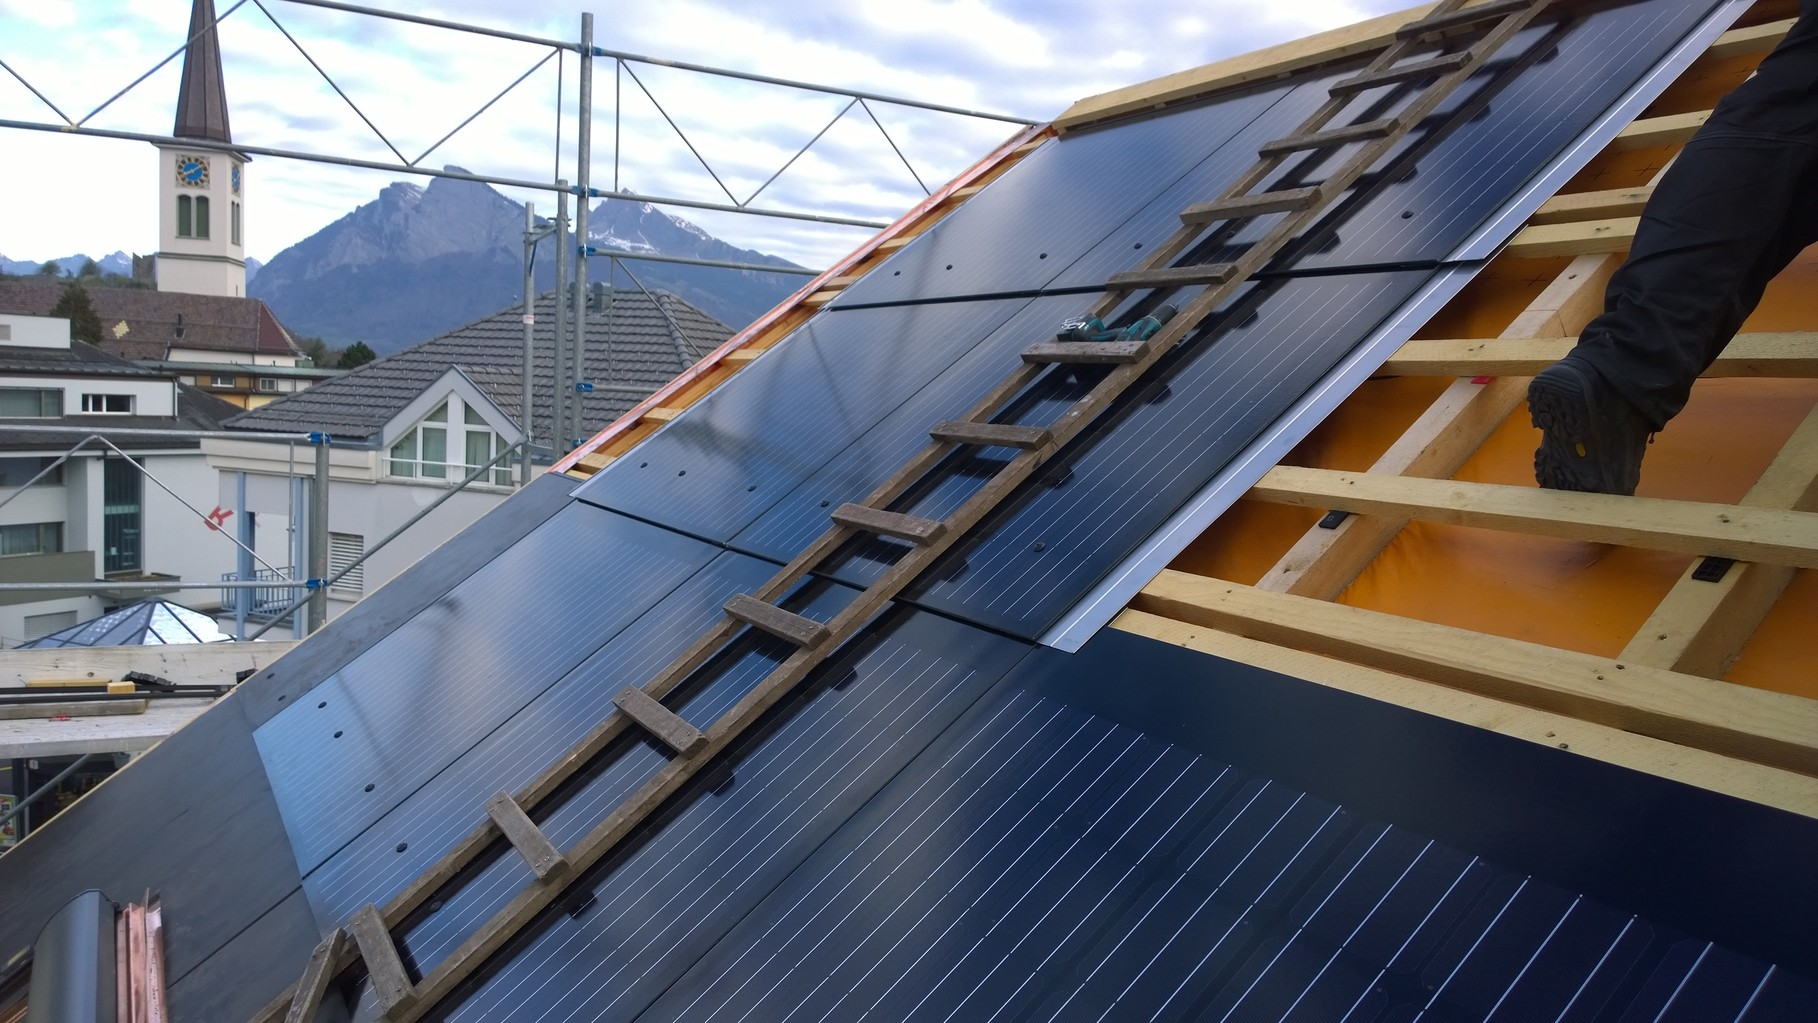 PV-Anlage 2,8kw in Bad Ragaz. Modul: Eternit Integral Plan 180 Wp Indachanlage